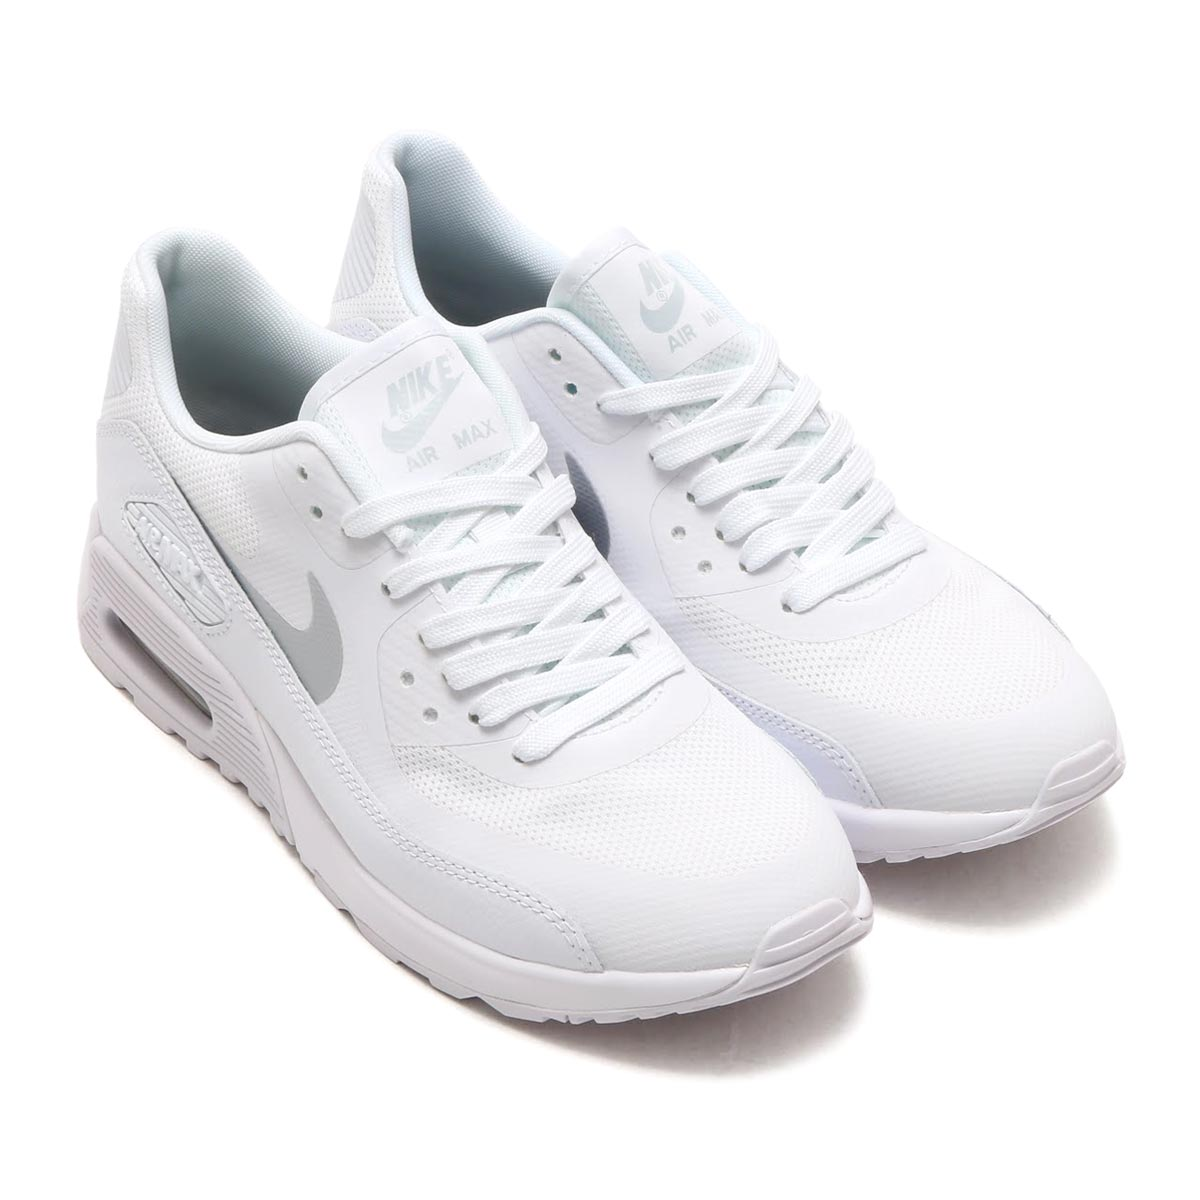 NIKE W AIR MAX 90 ULTRA 2.0 (Nike women Air Max 90 ultra 2.0) (WHITE MTLC  PLATINUM-WHITE-BLACK) 17SP-I 493ab24a98